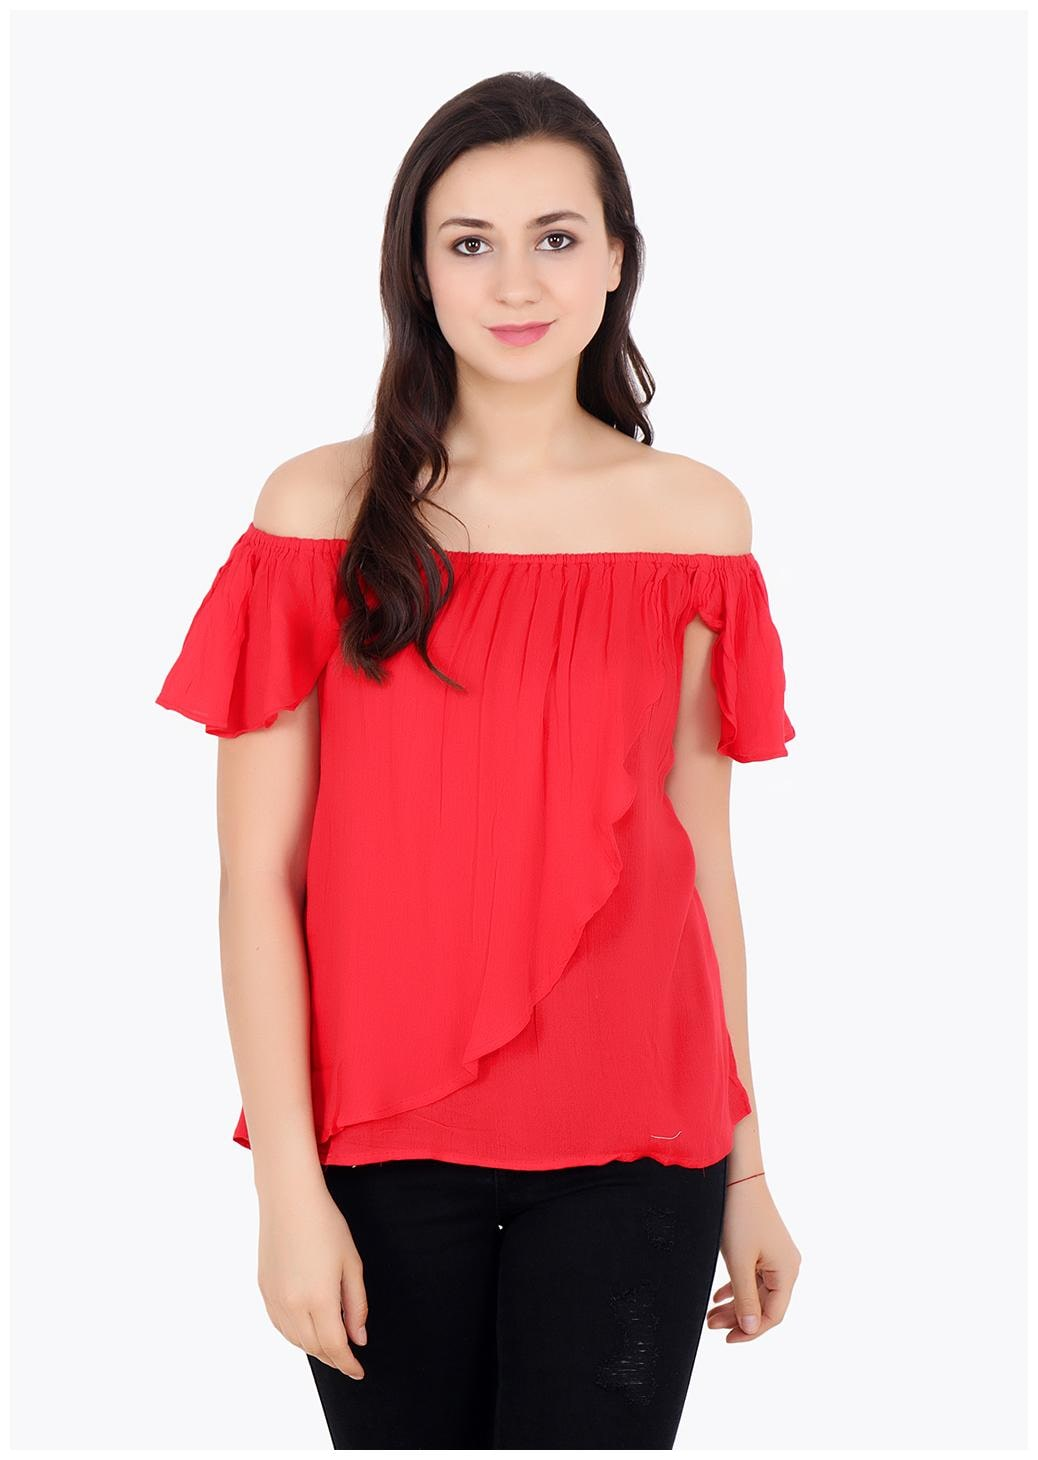 https://assetscdn1.paytm.com/images/catalog/product/A/AP/APPCATION-RED-SKANC313047D65BC83/a_0..jpg